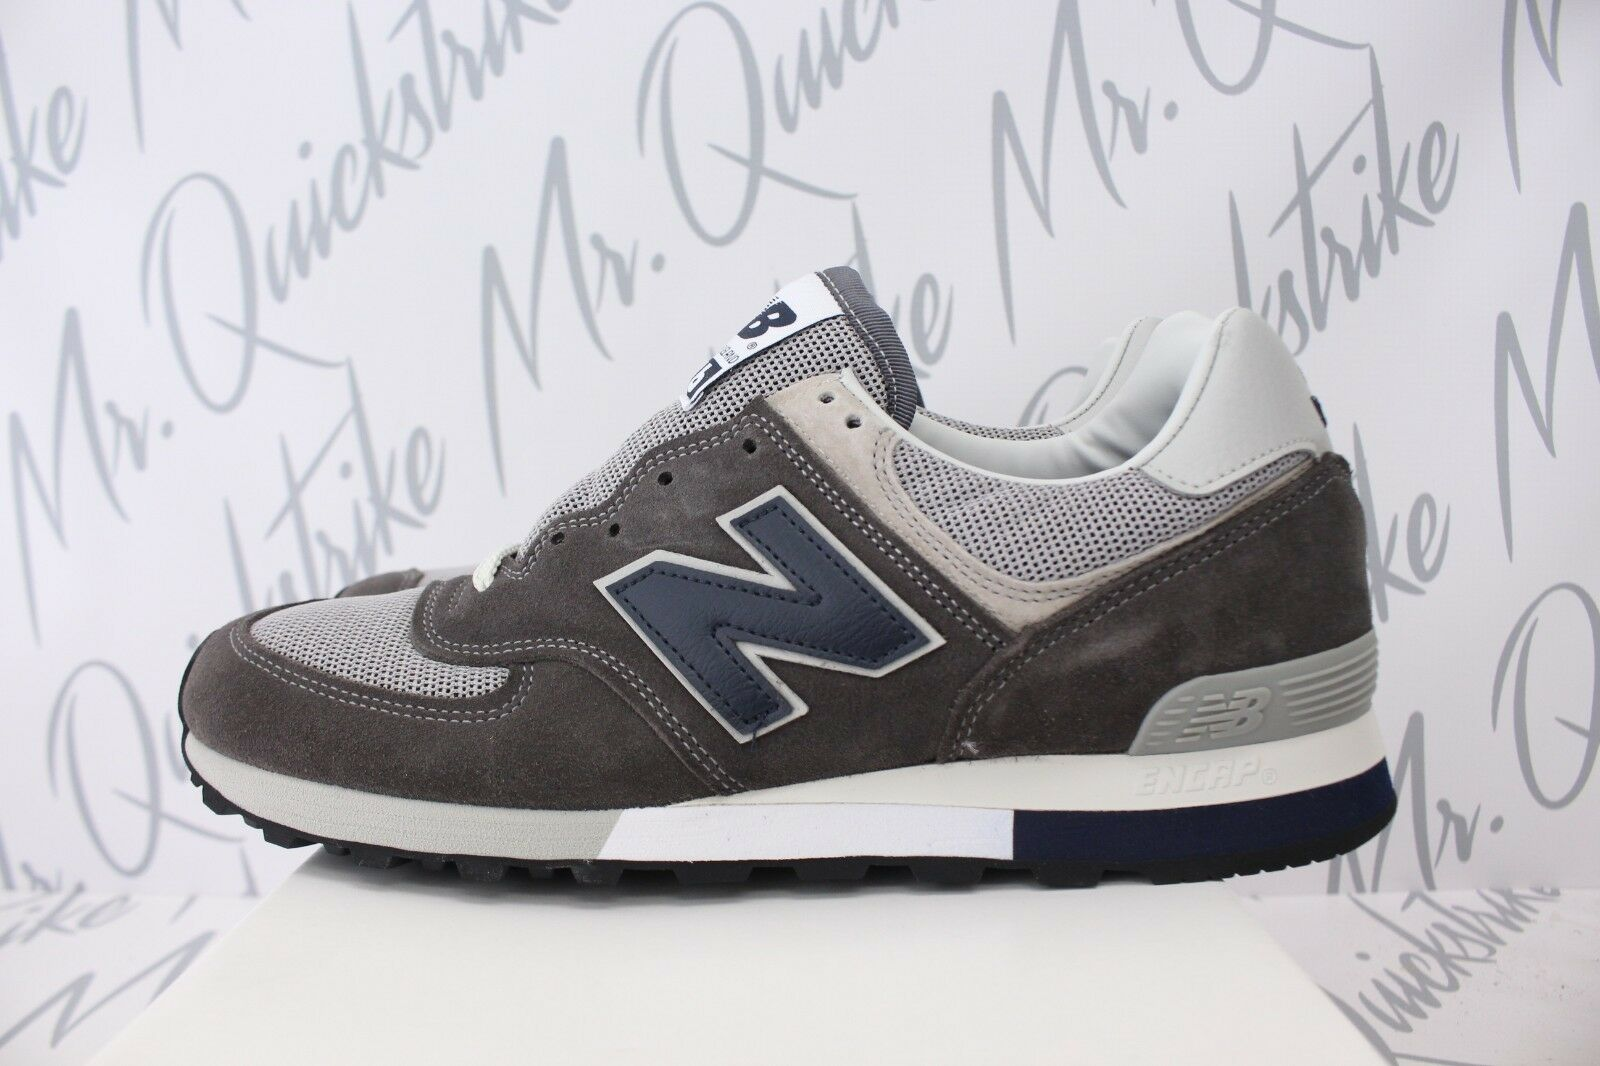 NEW BALANCE 576 MADE IN UK SZ 9.5 GREY NAVY OM576OGG